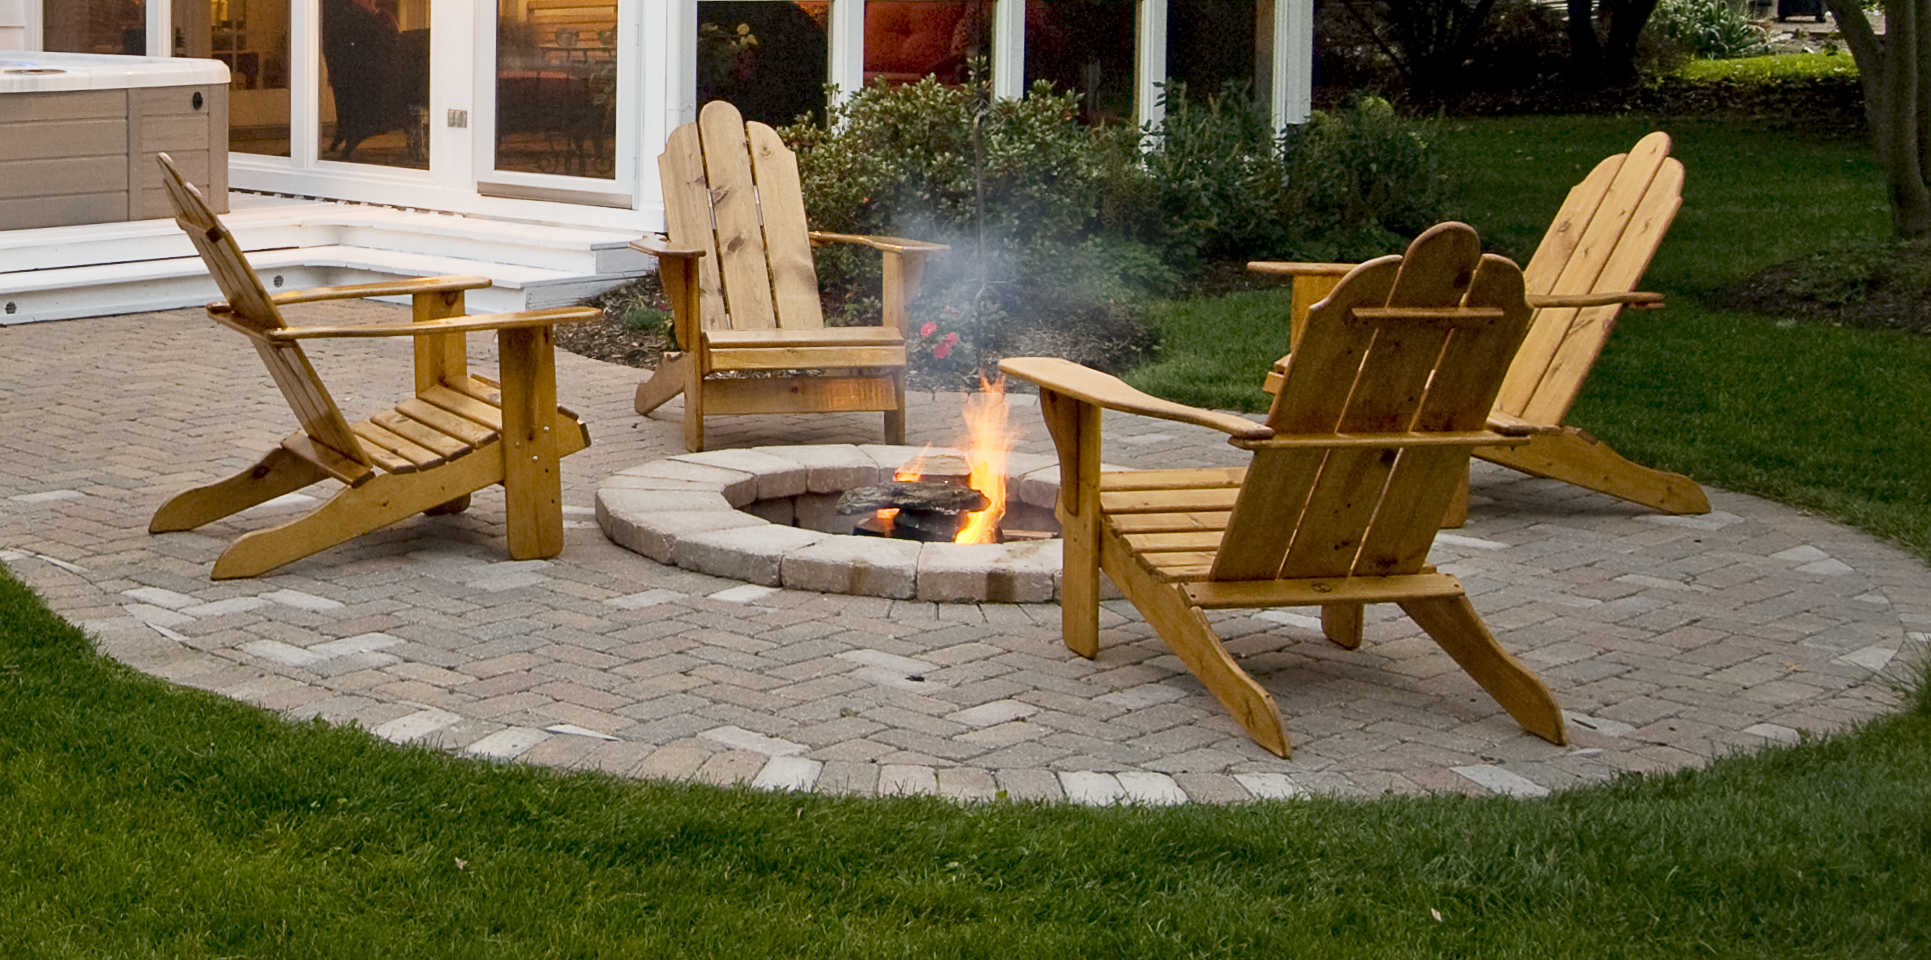 5 simple steps to build a backyard stone fire pit #toliveorsell